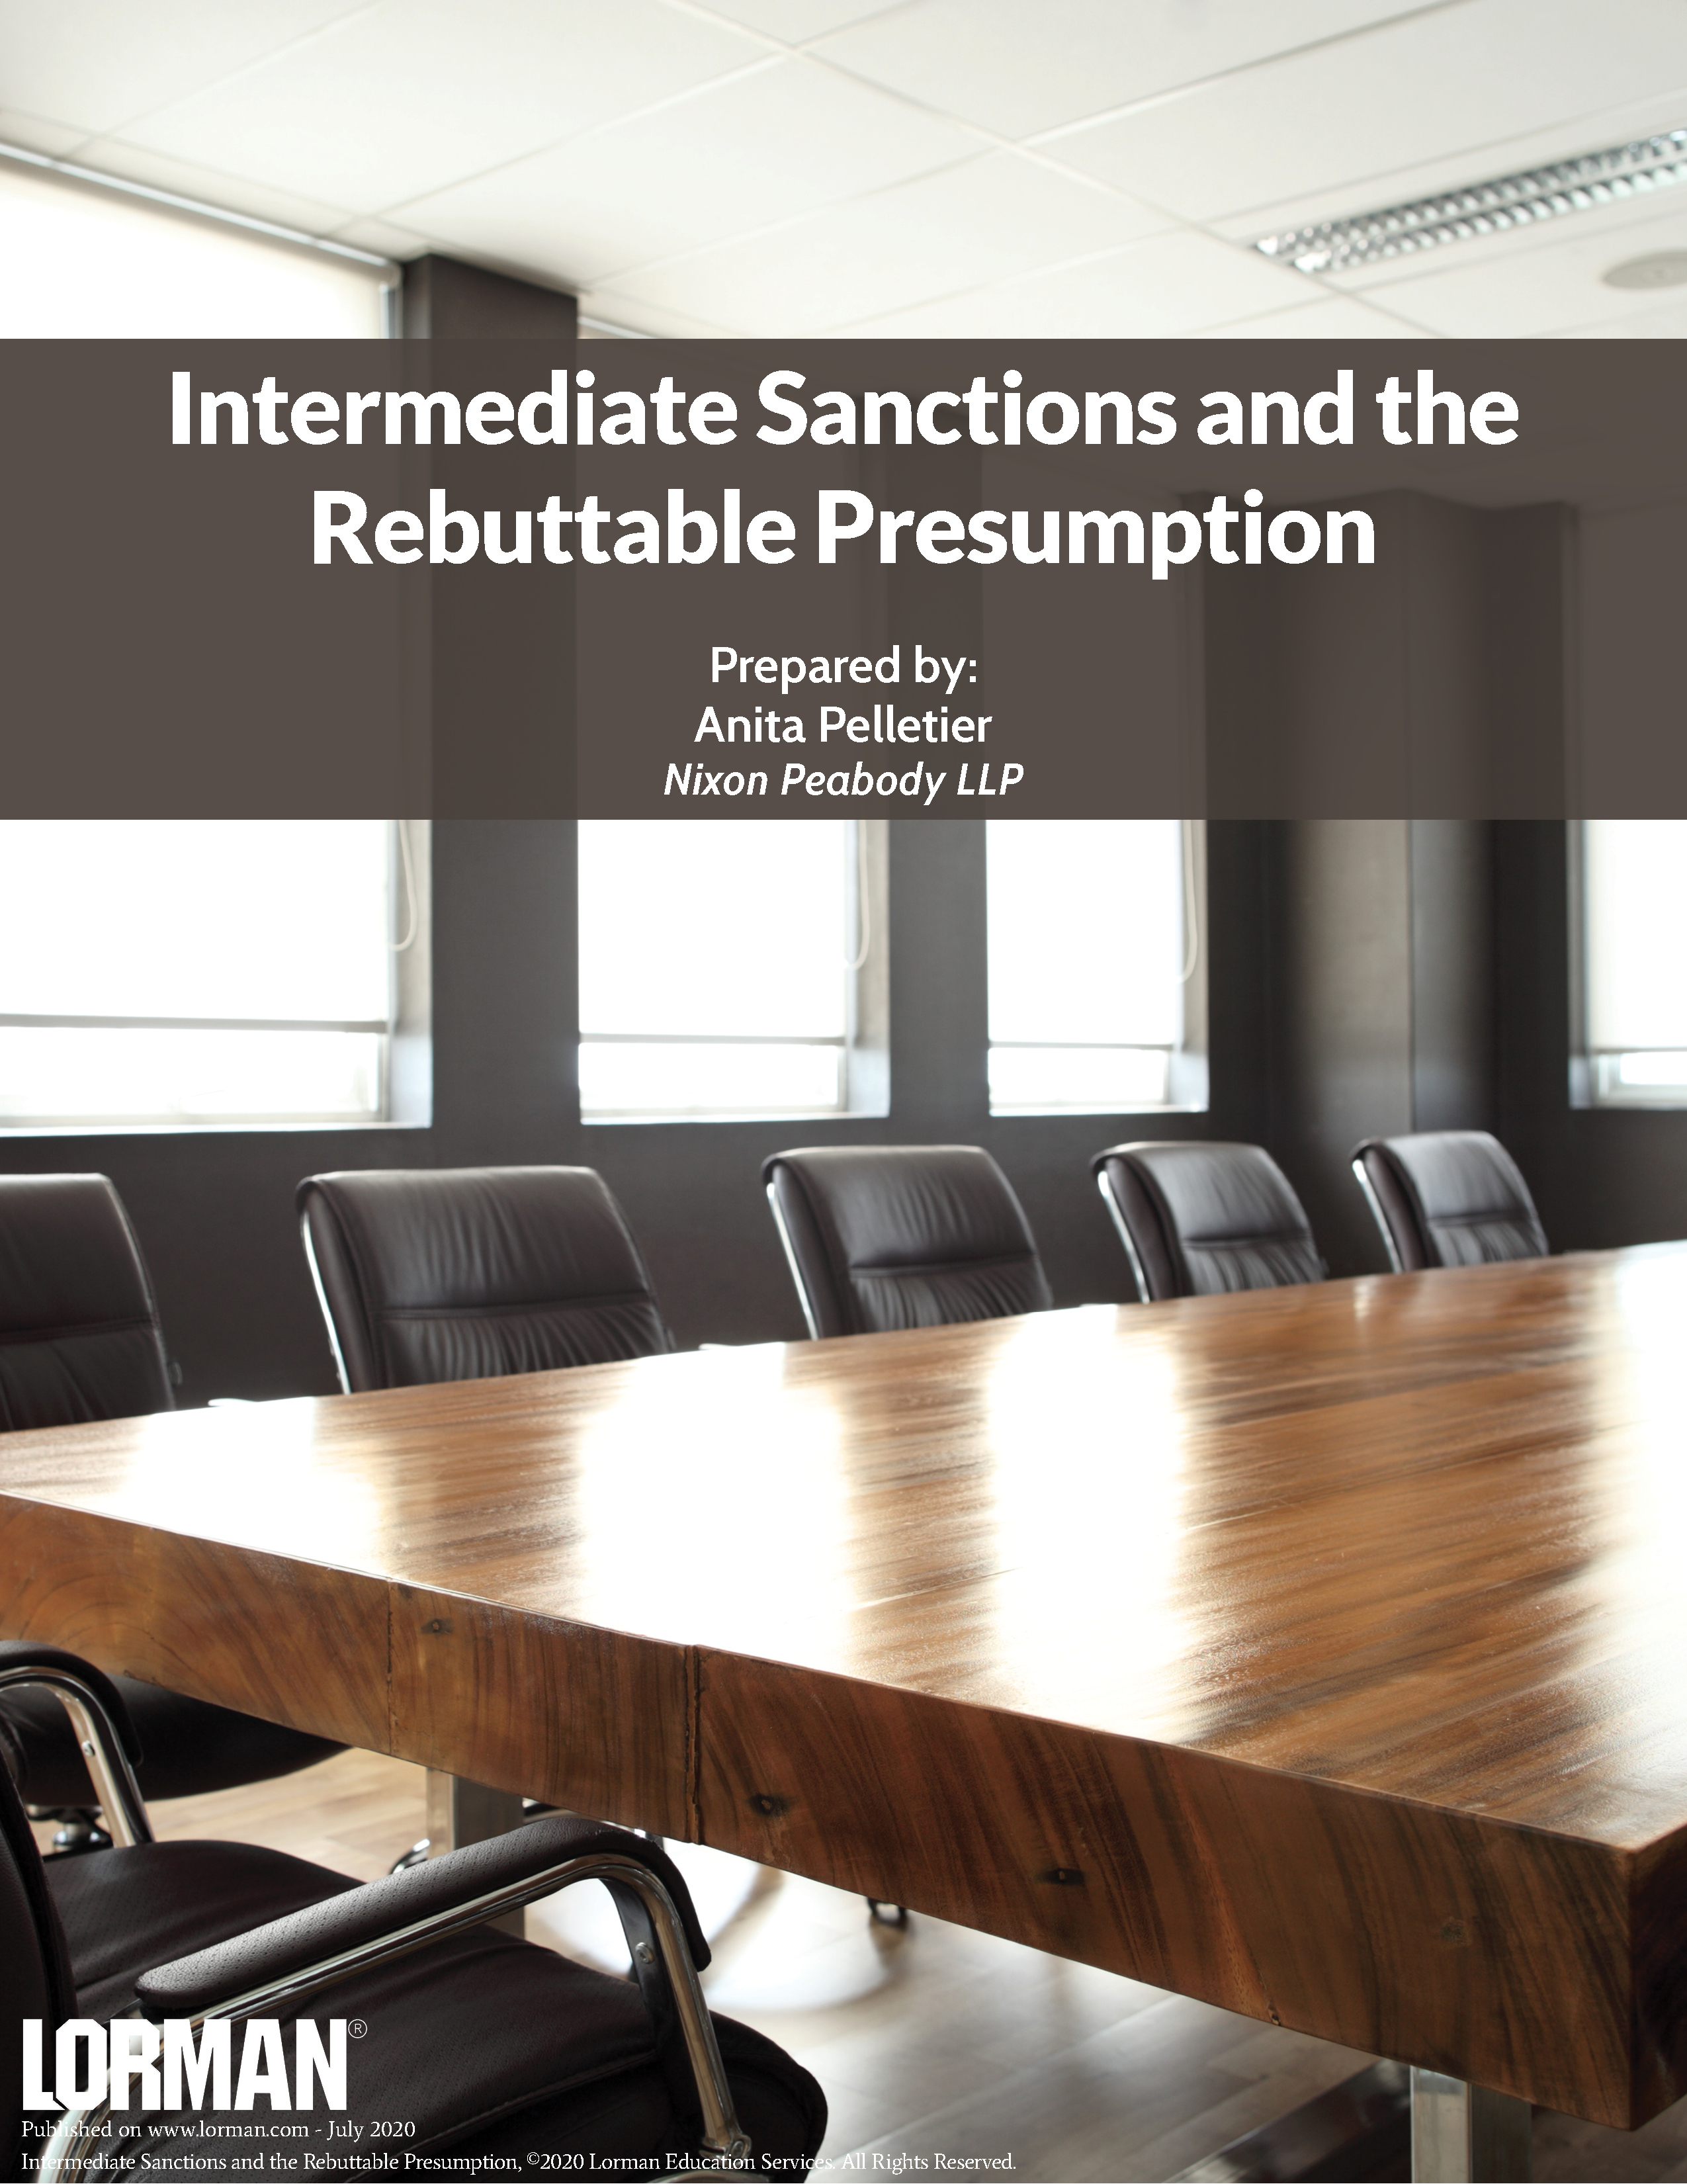 Intermediate Sanctions and the Rebuttable Presumption